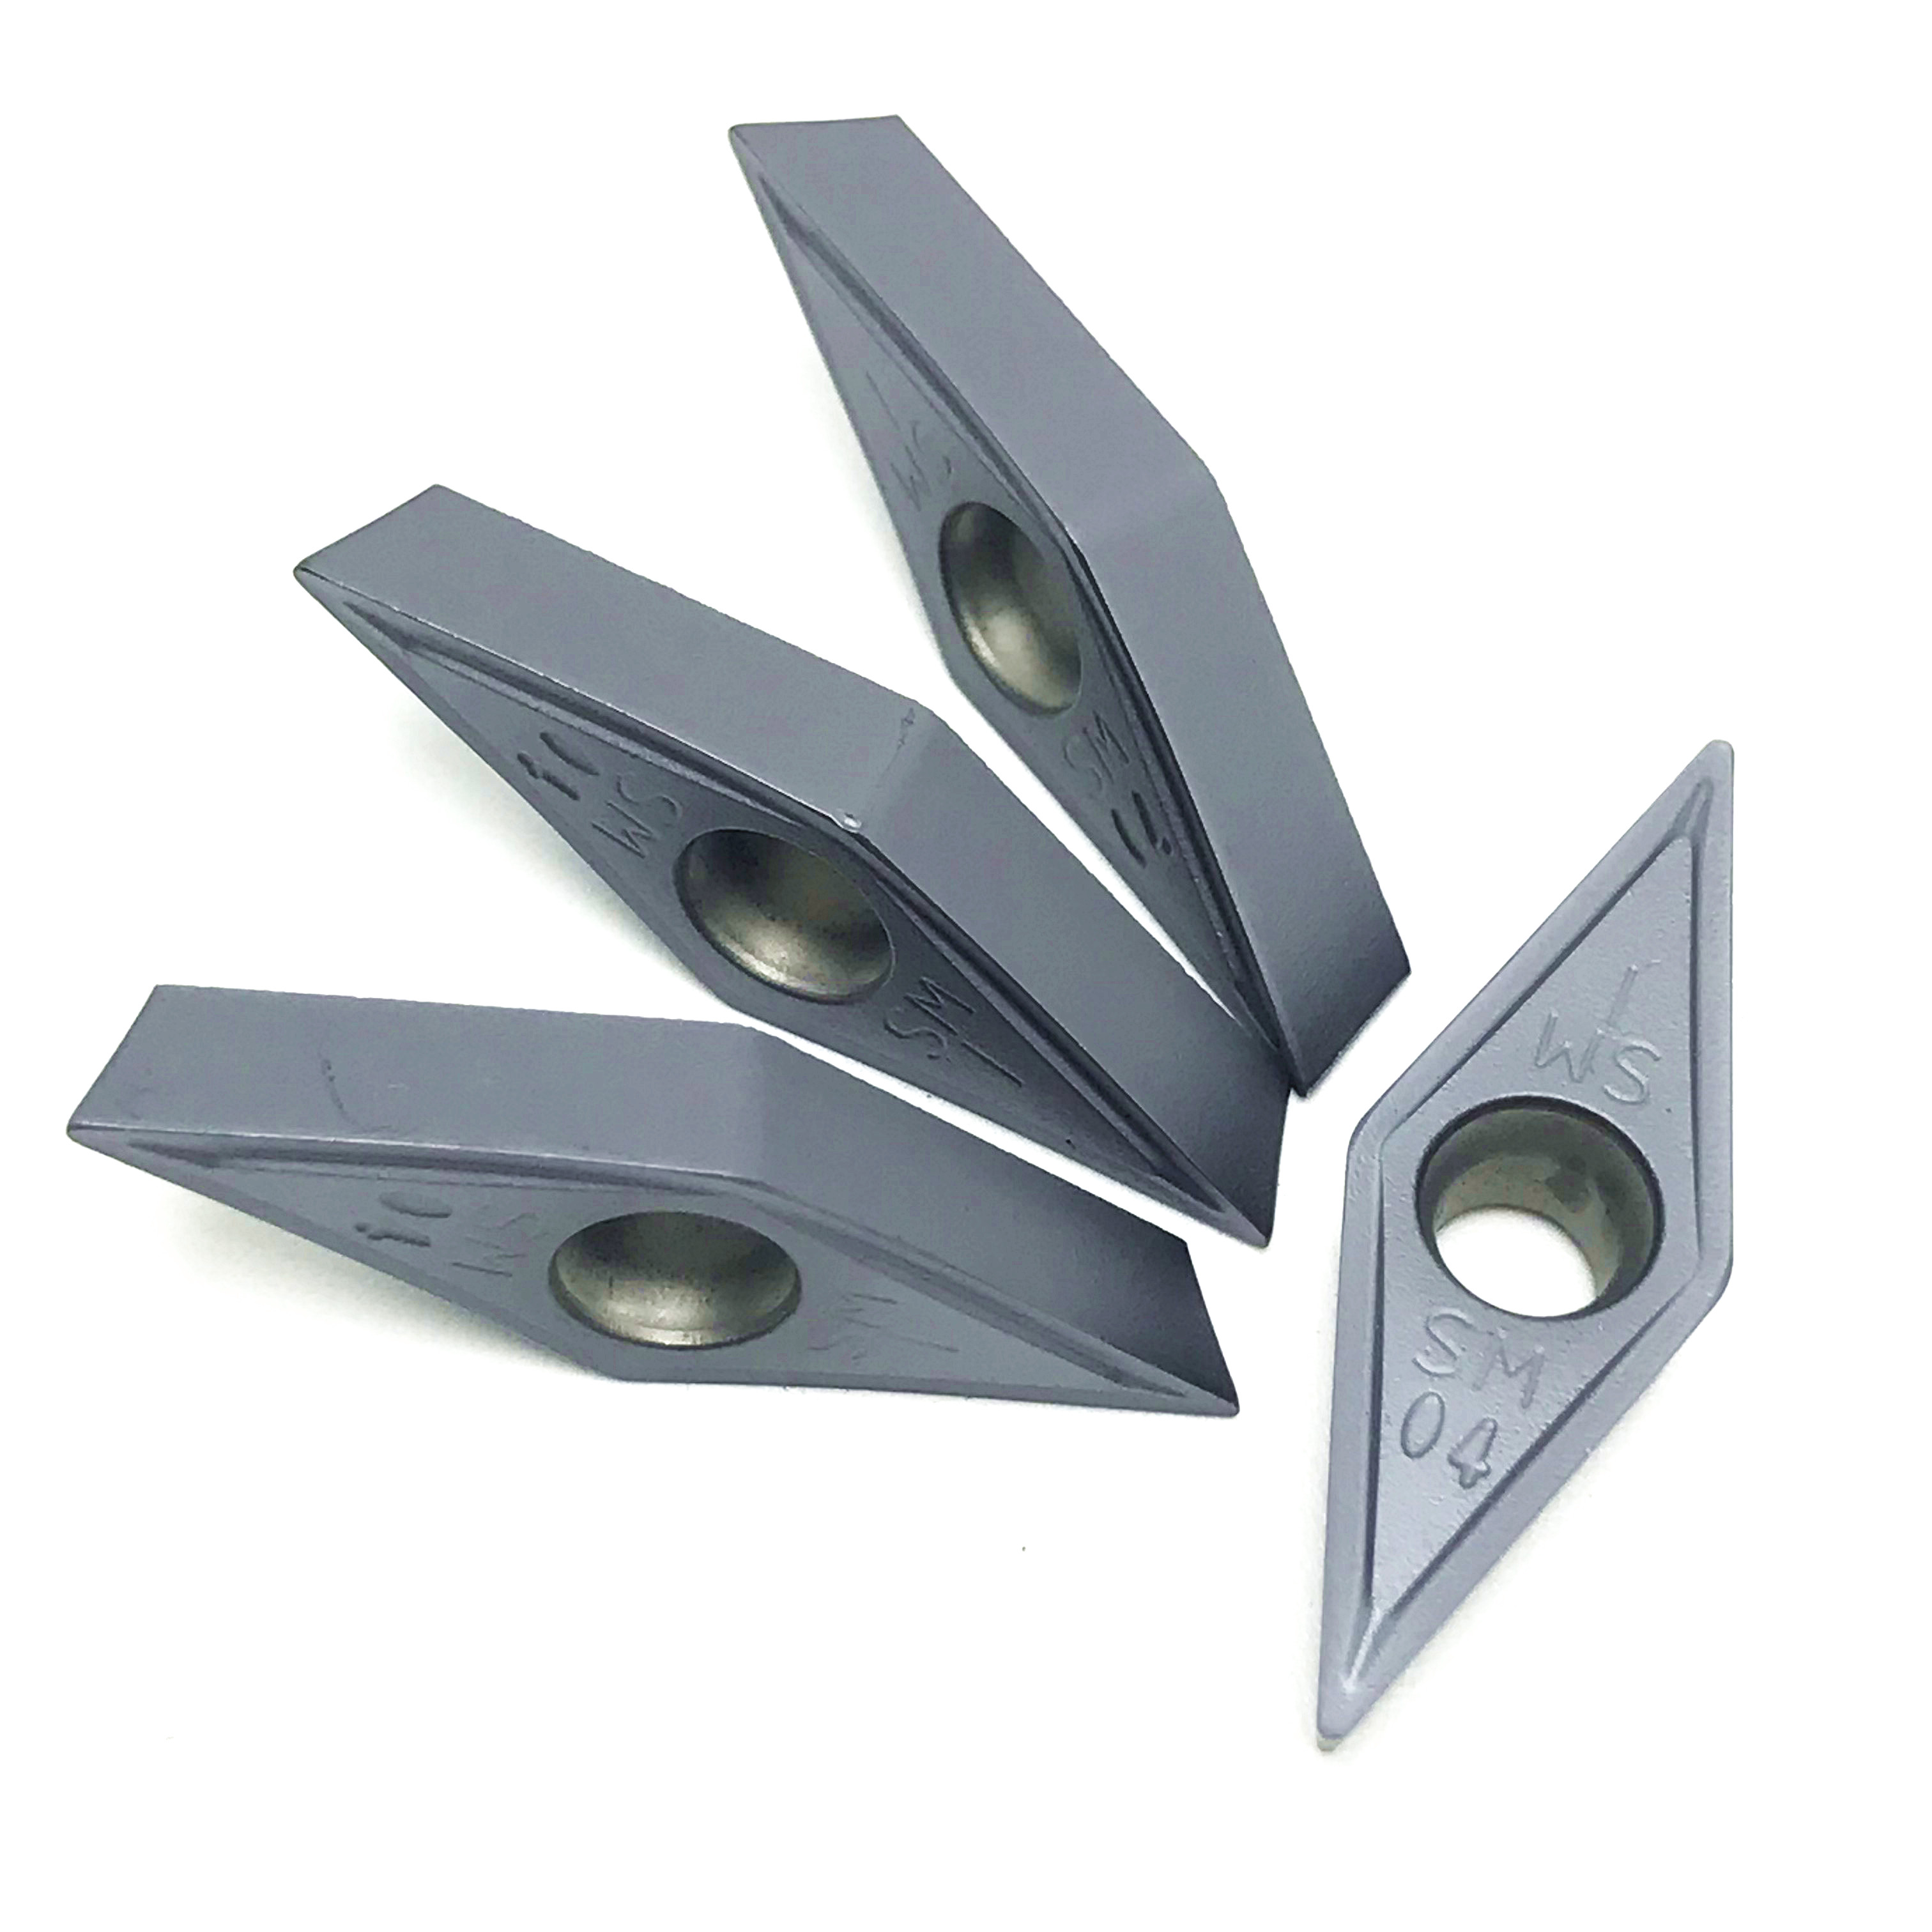 Tungsten Carbide VCMT160408 SM IC907/908 External Turning Tools Carbide insert Lathe cutter Tool <font><b>vcmt</b></font> <font><b>160404</b></font> CVD turning insert image